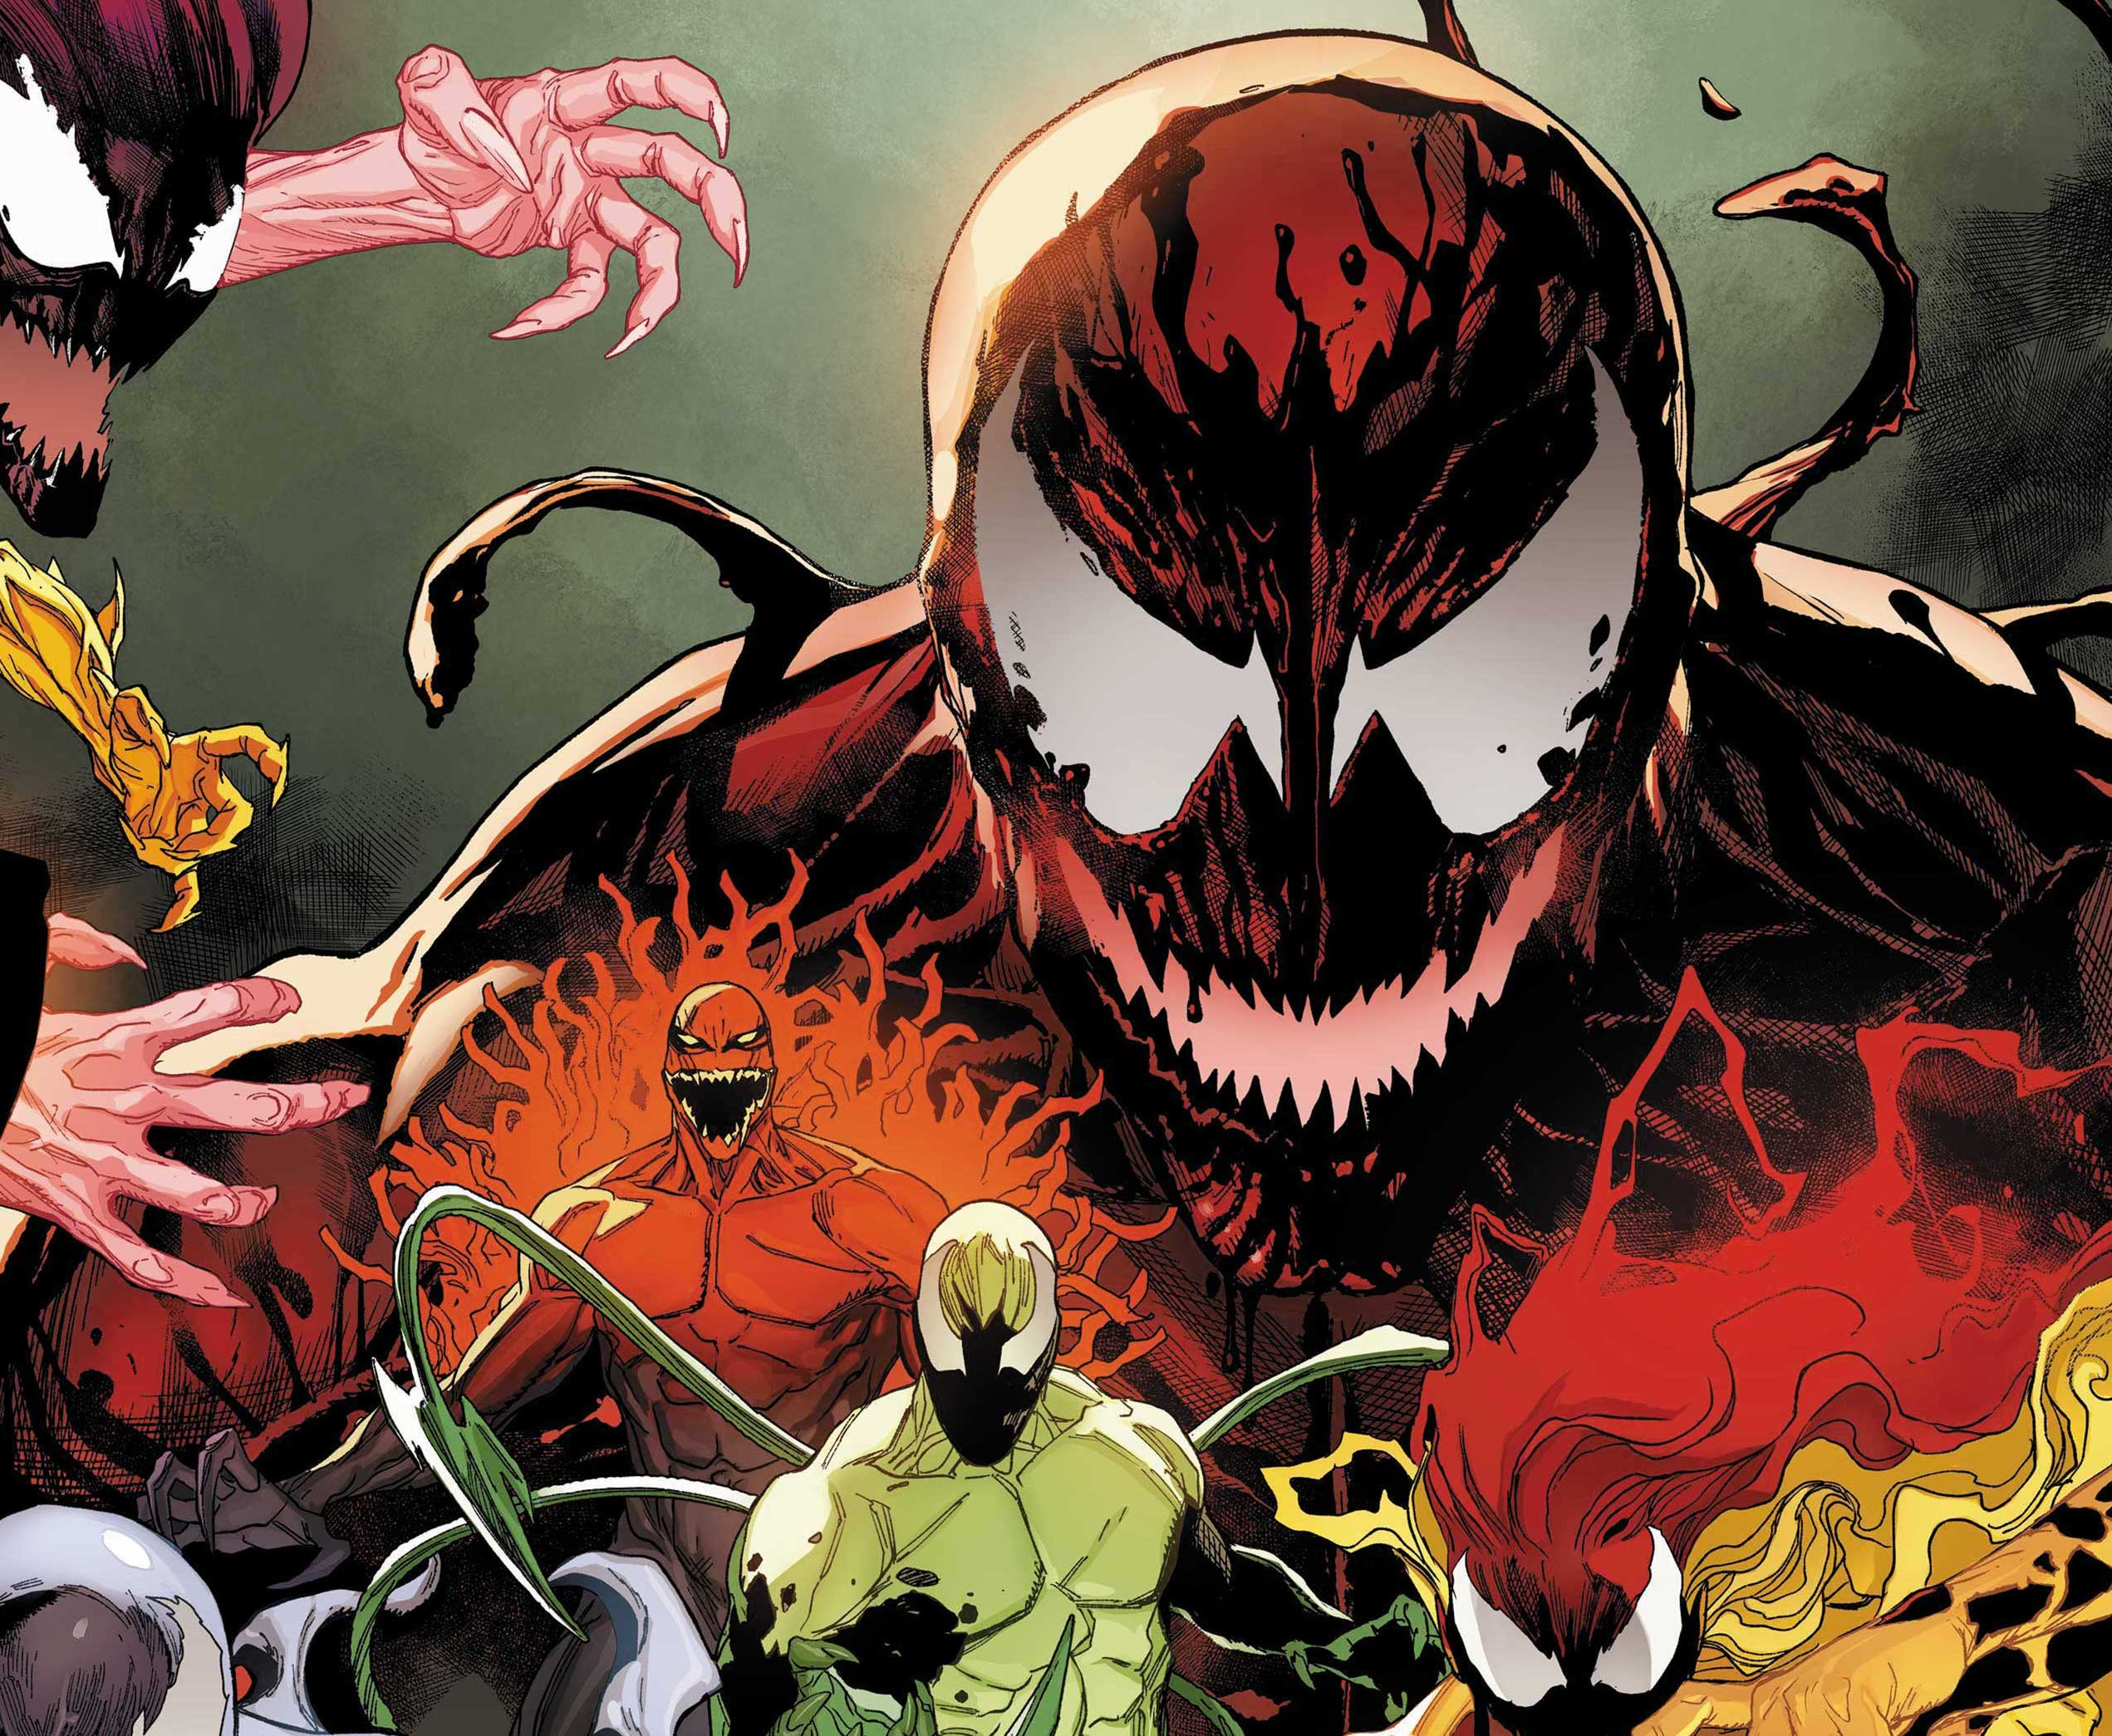 Marvel Comics kicking off 'Extreme Carnage Alpha' #1 this July